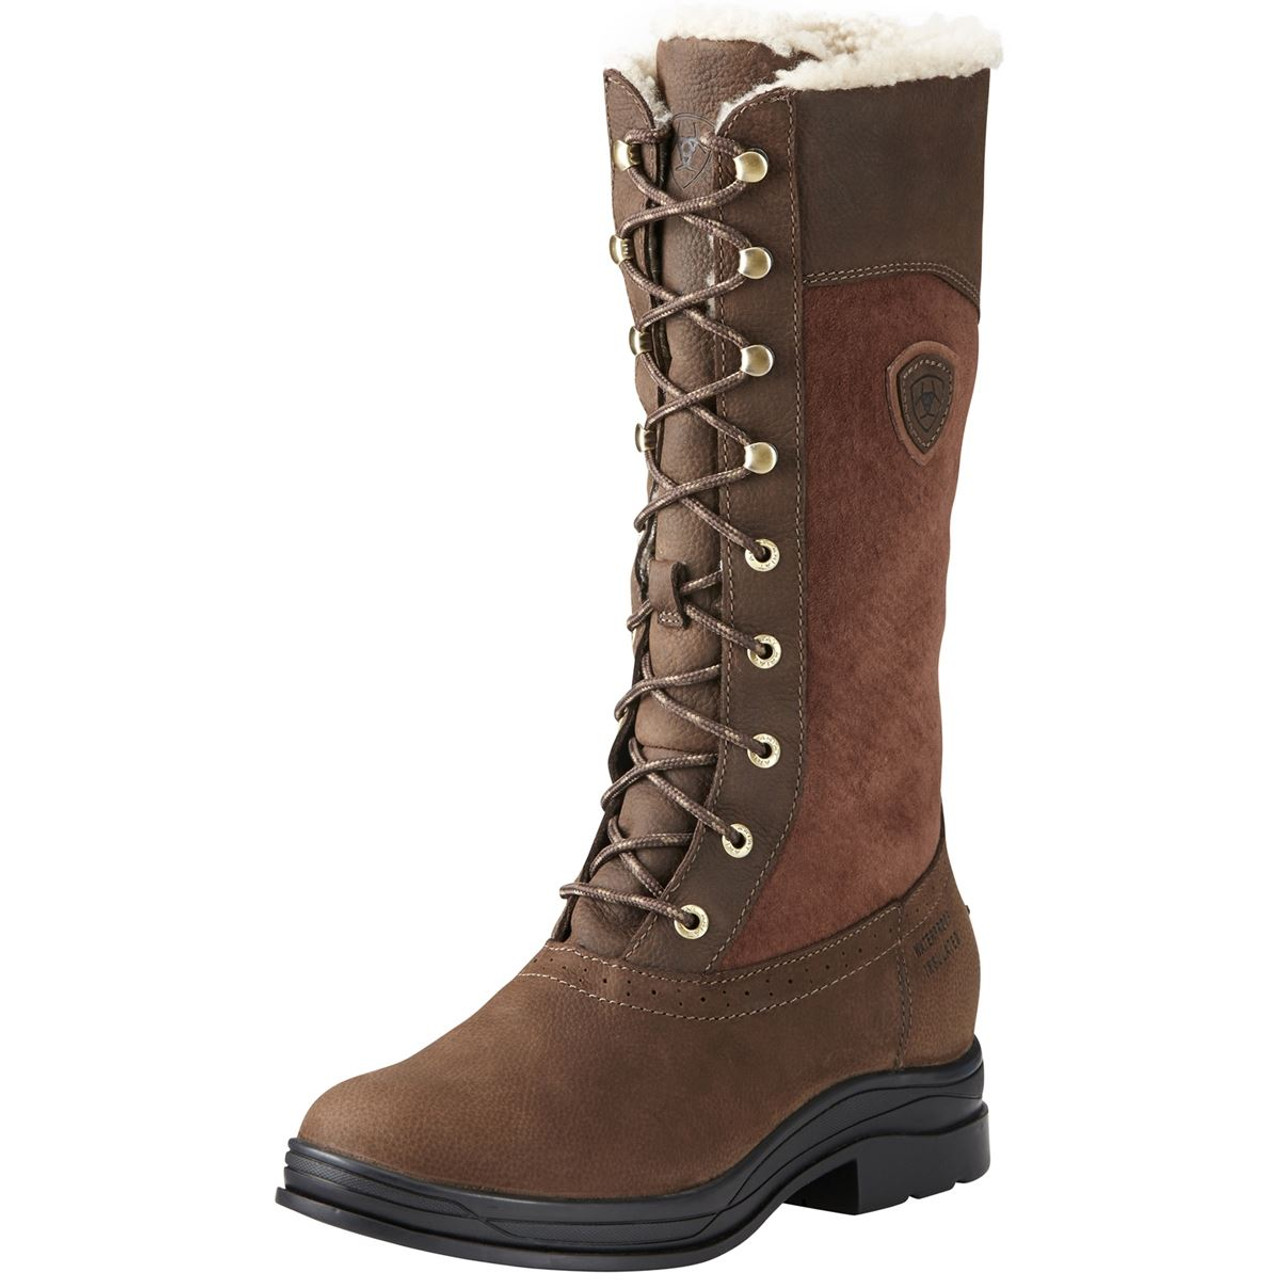 Ariat Wythburne H2O Insulated Boots